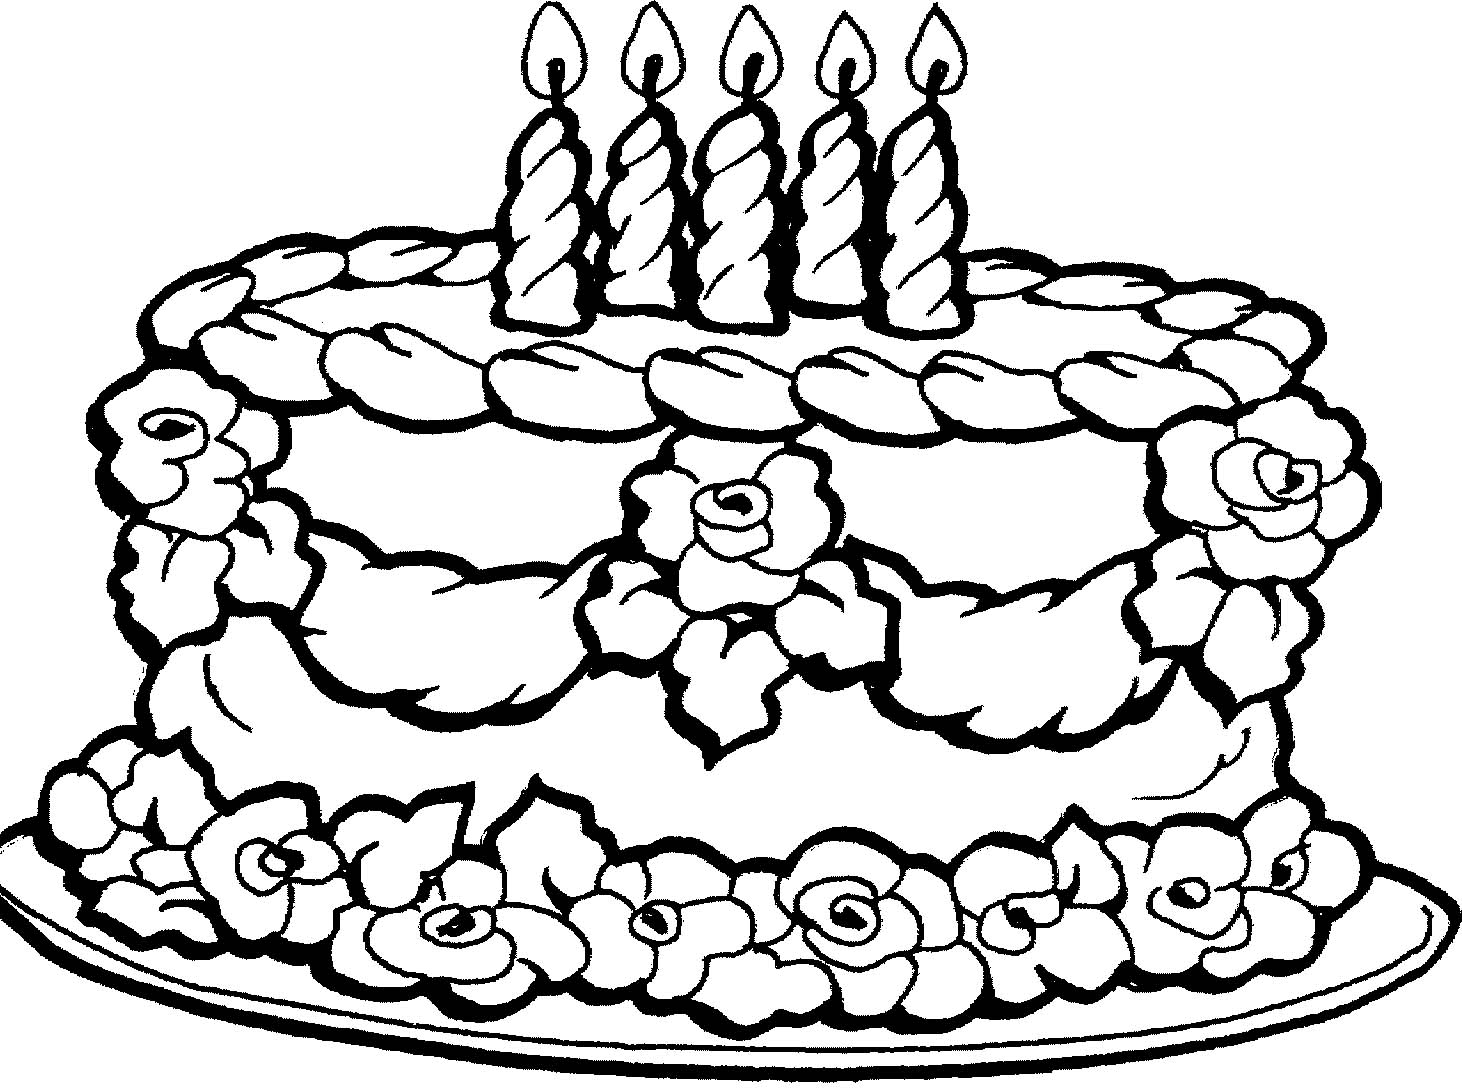 coloring pages for kids birthday cake ; cake-printable-coloring-pages-printable-birthday-cake-coloring-pages-kids-colorine-4965